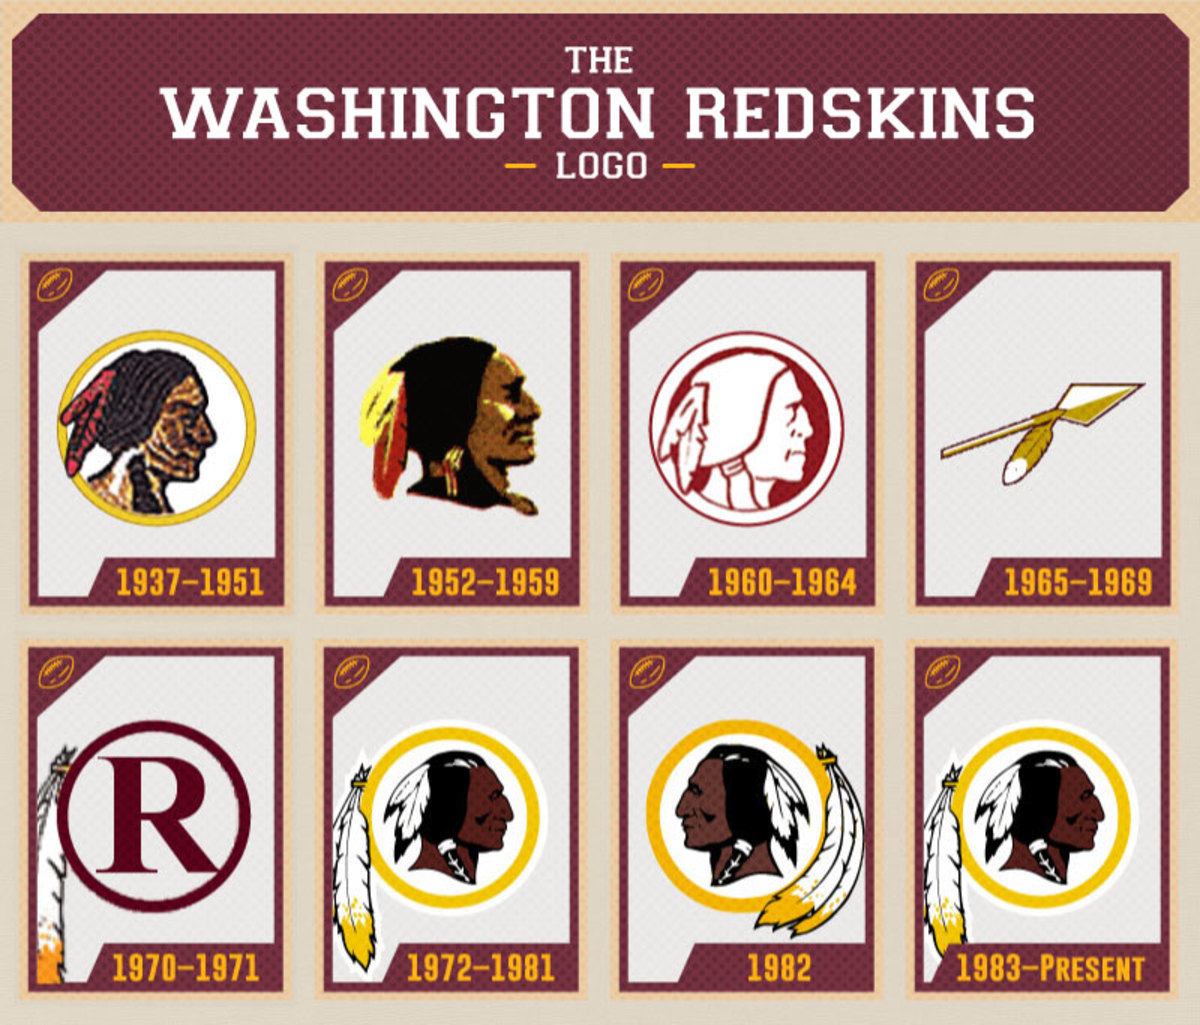 In 1988, the Washington Redskins won the Super Bowl.